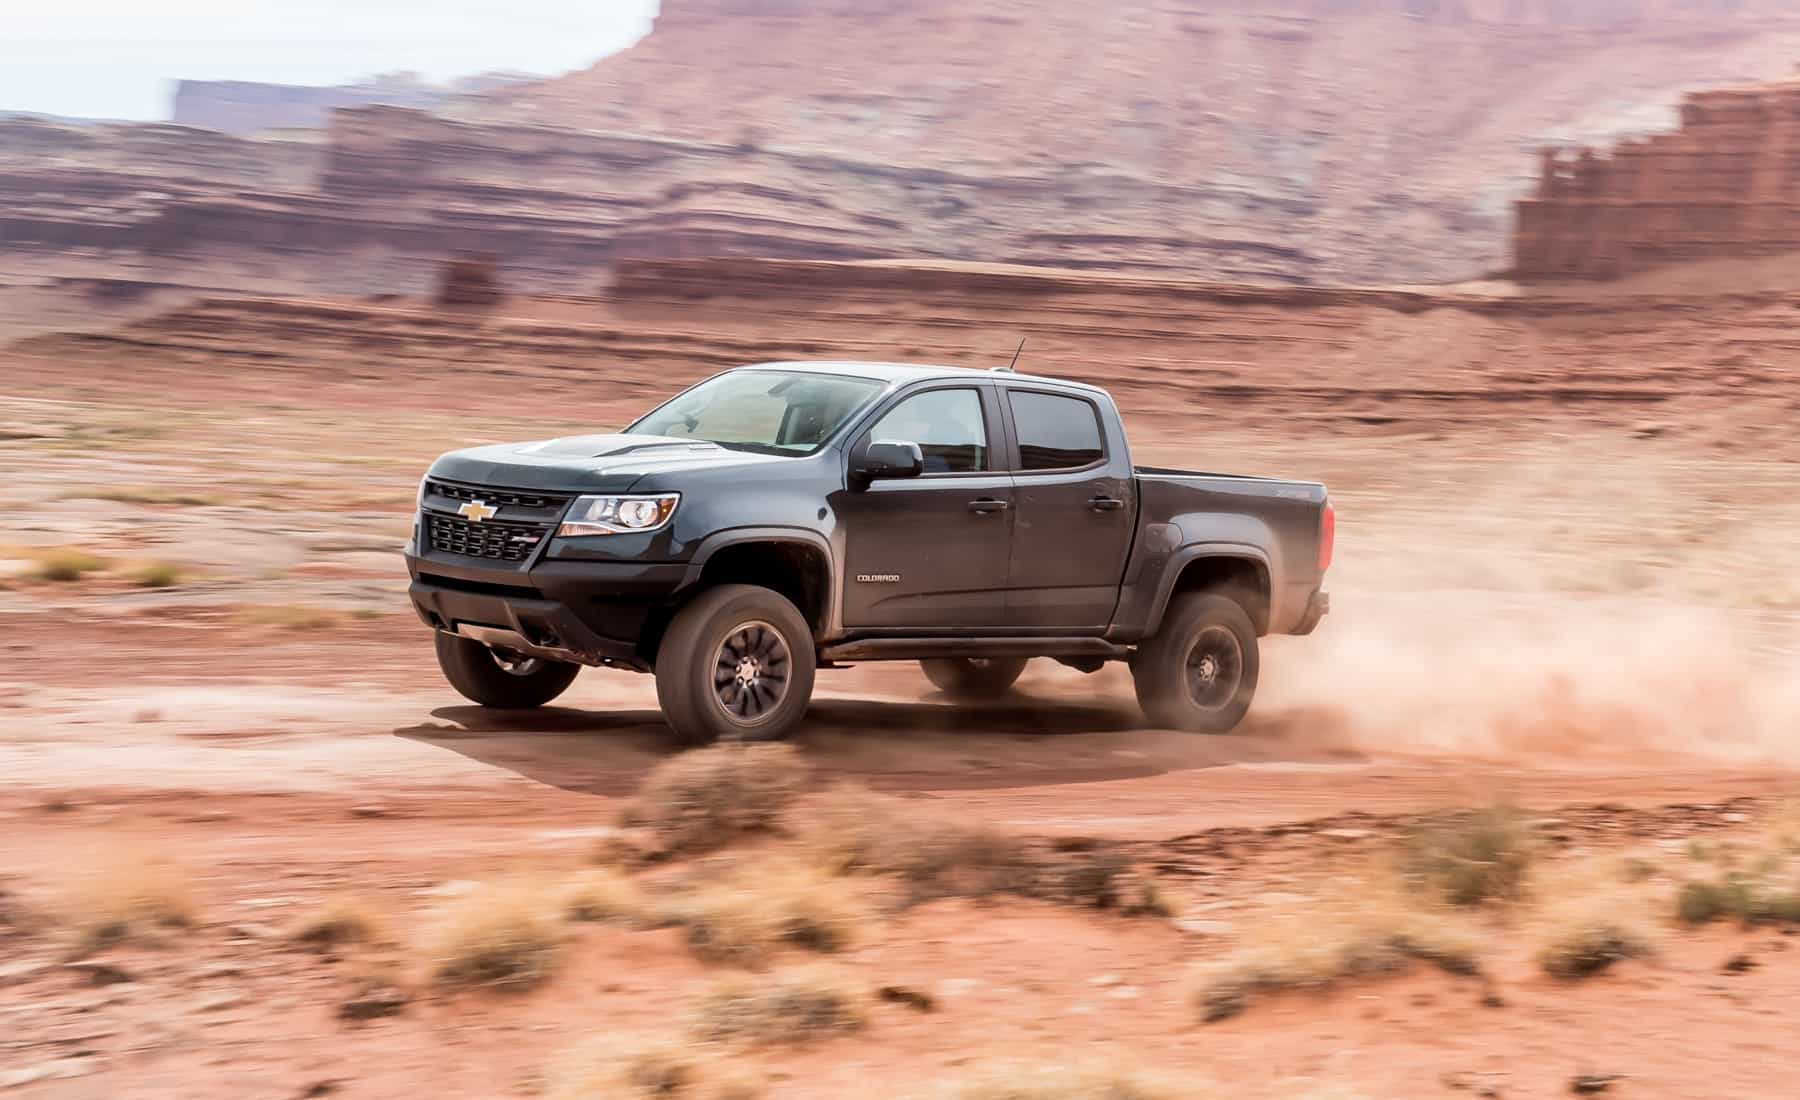 2017 Chevrolet Colorado ZR2 Crew Cab Diesel (Photo 1 of 16)